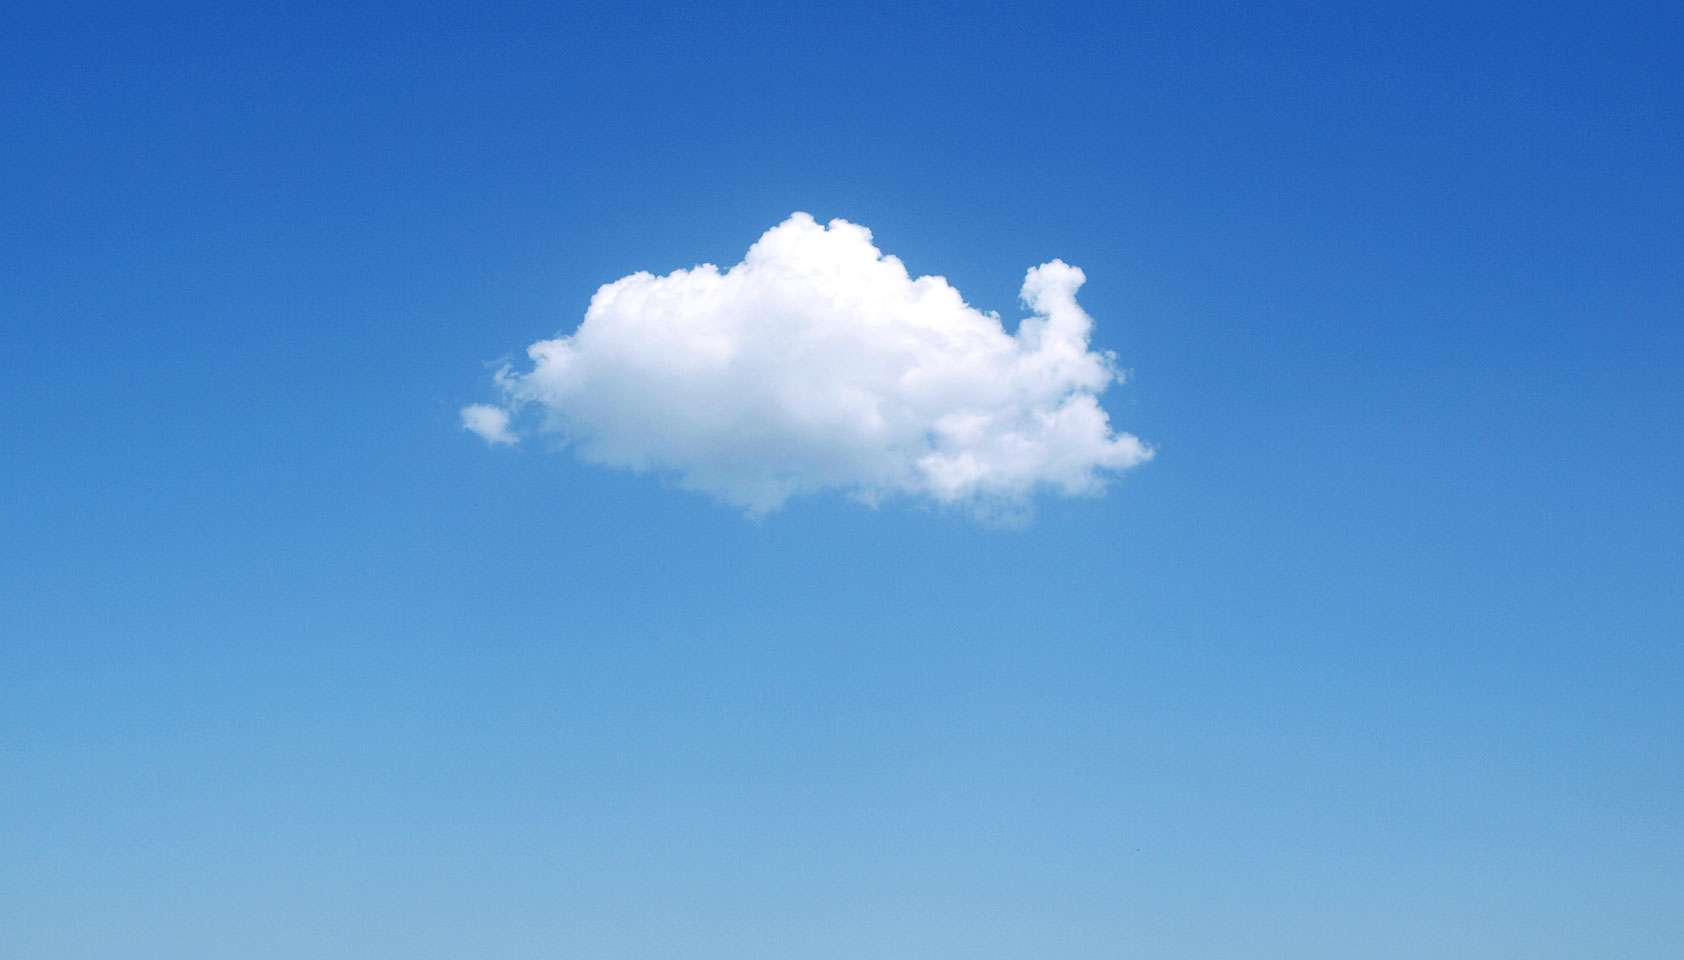 why does the cloud